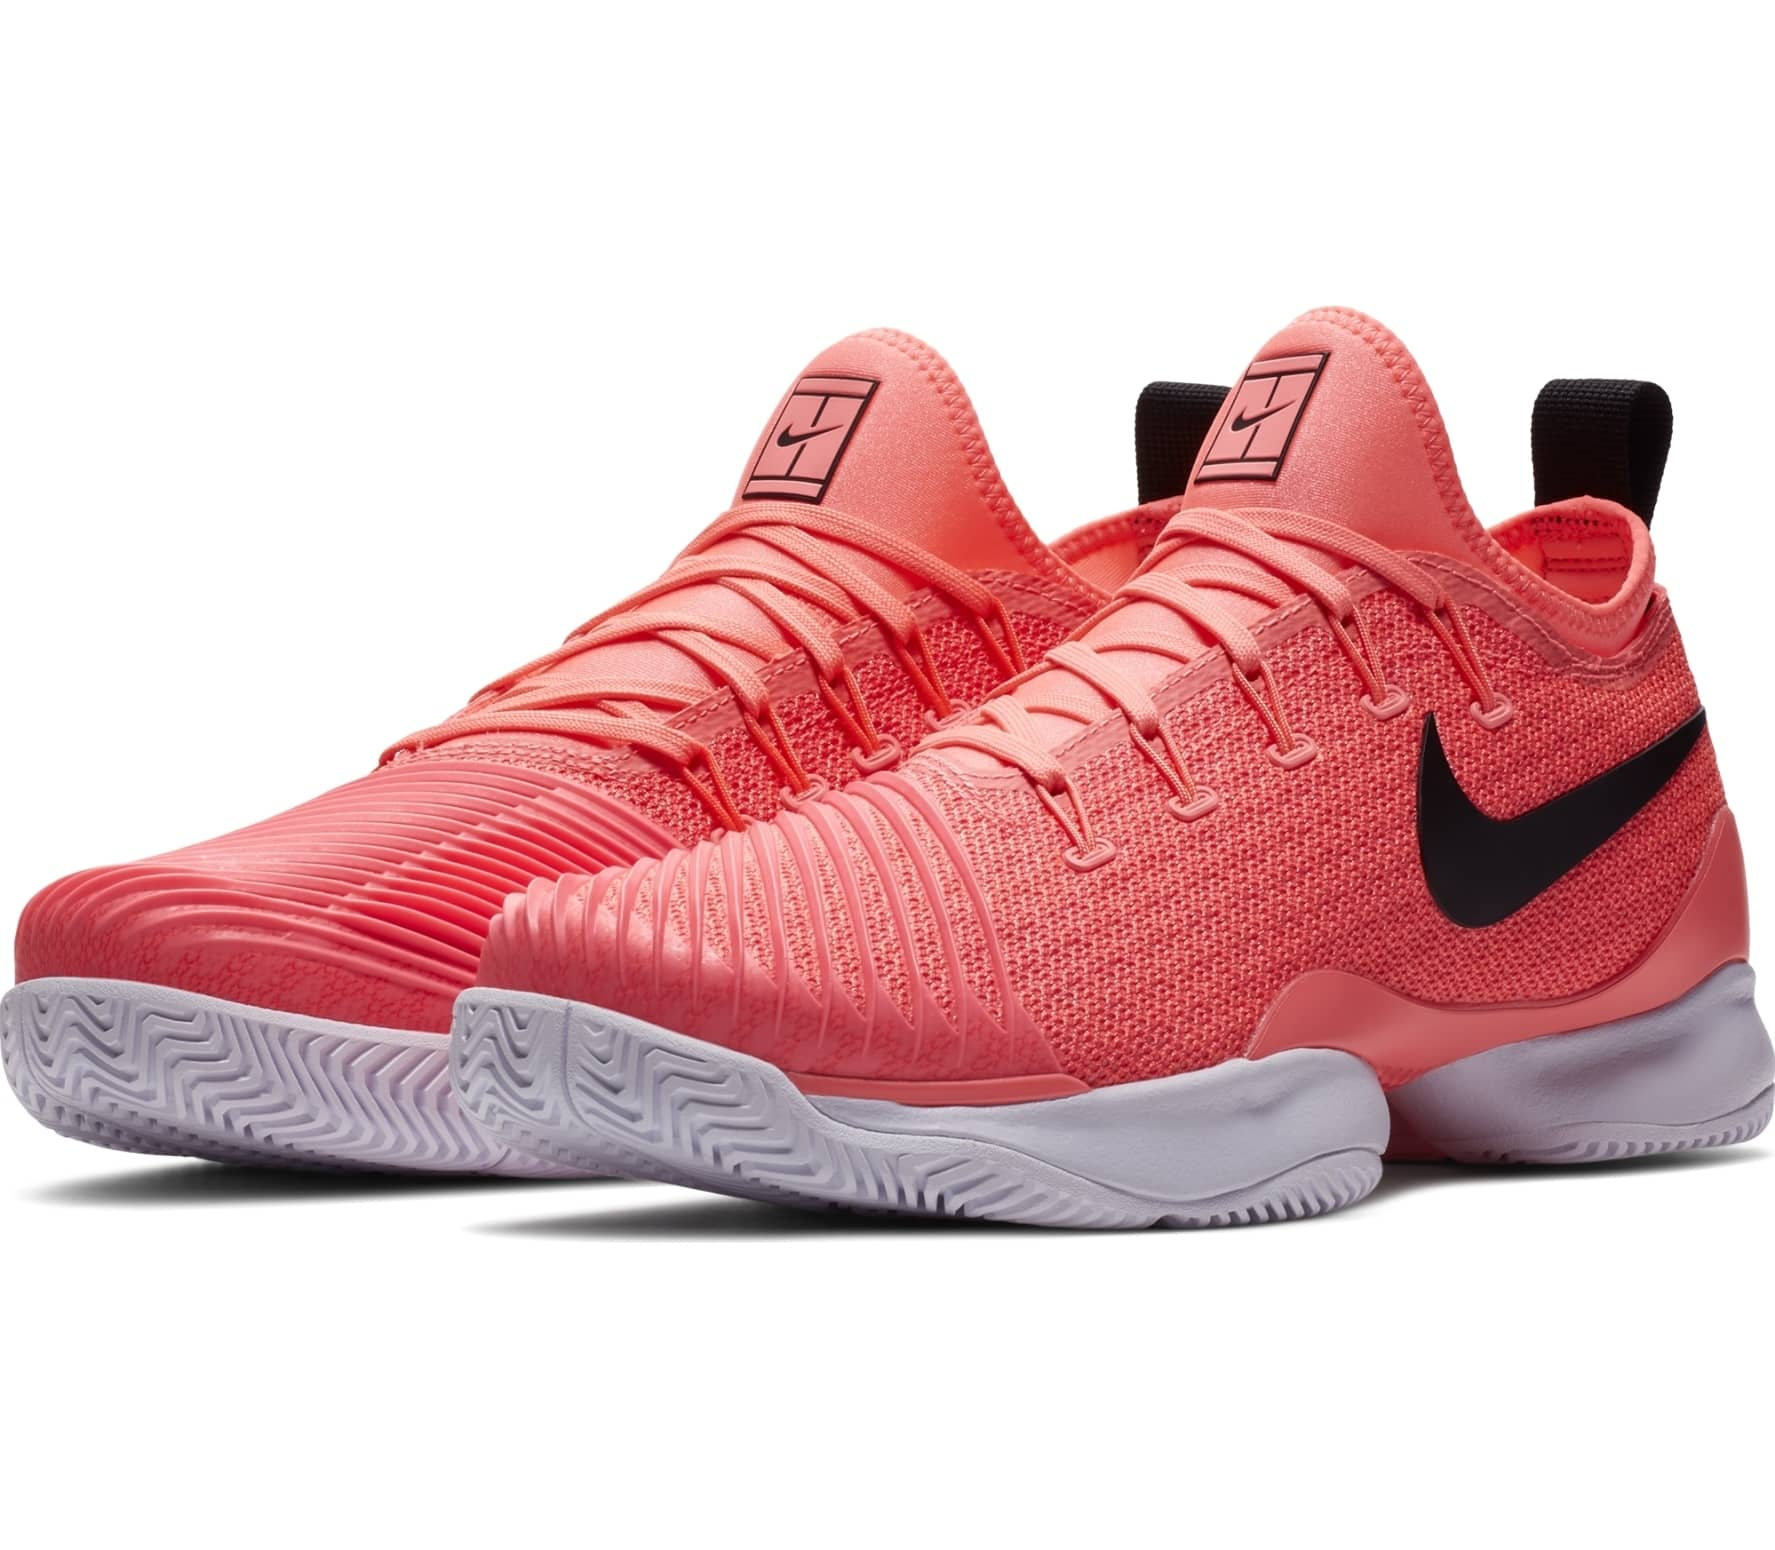 info for ca1b5 fc5a7 Nike - Air Zoom Ultra React men s tennis shoes (pink)